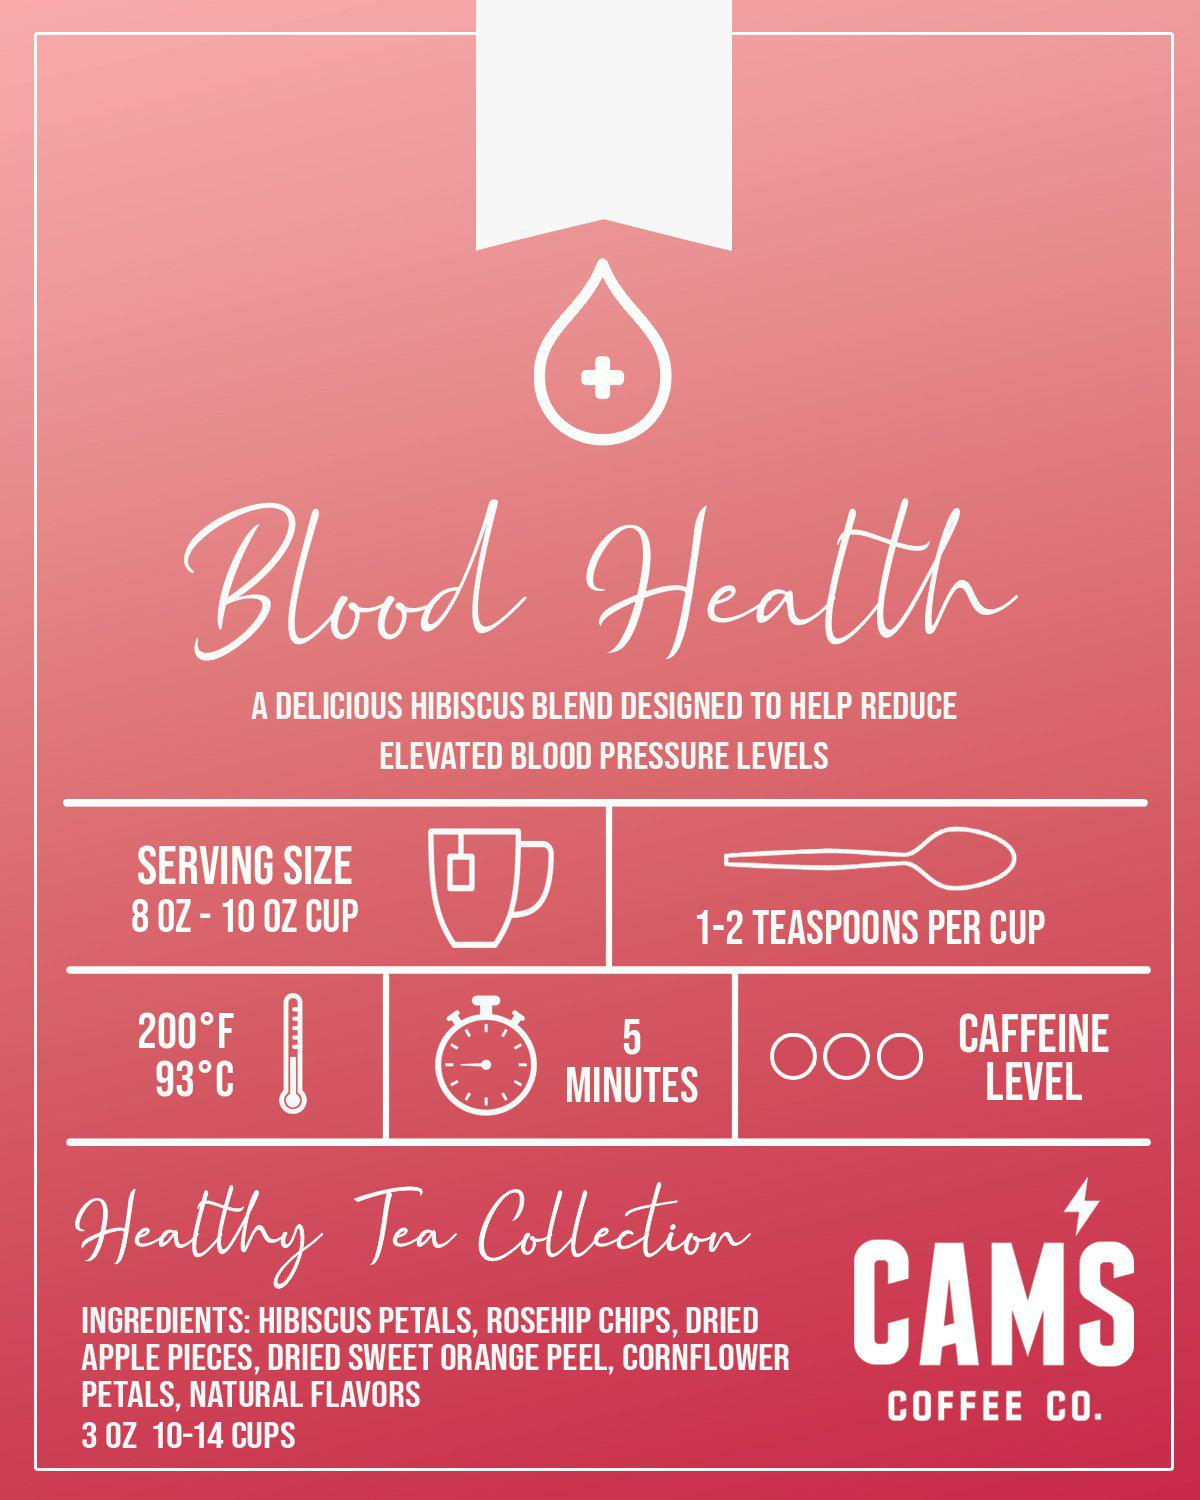 Blood Purifying Tea - Blood Cleansing Tea | Cam's Coffee Co.